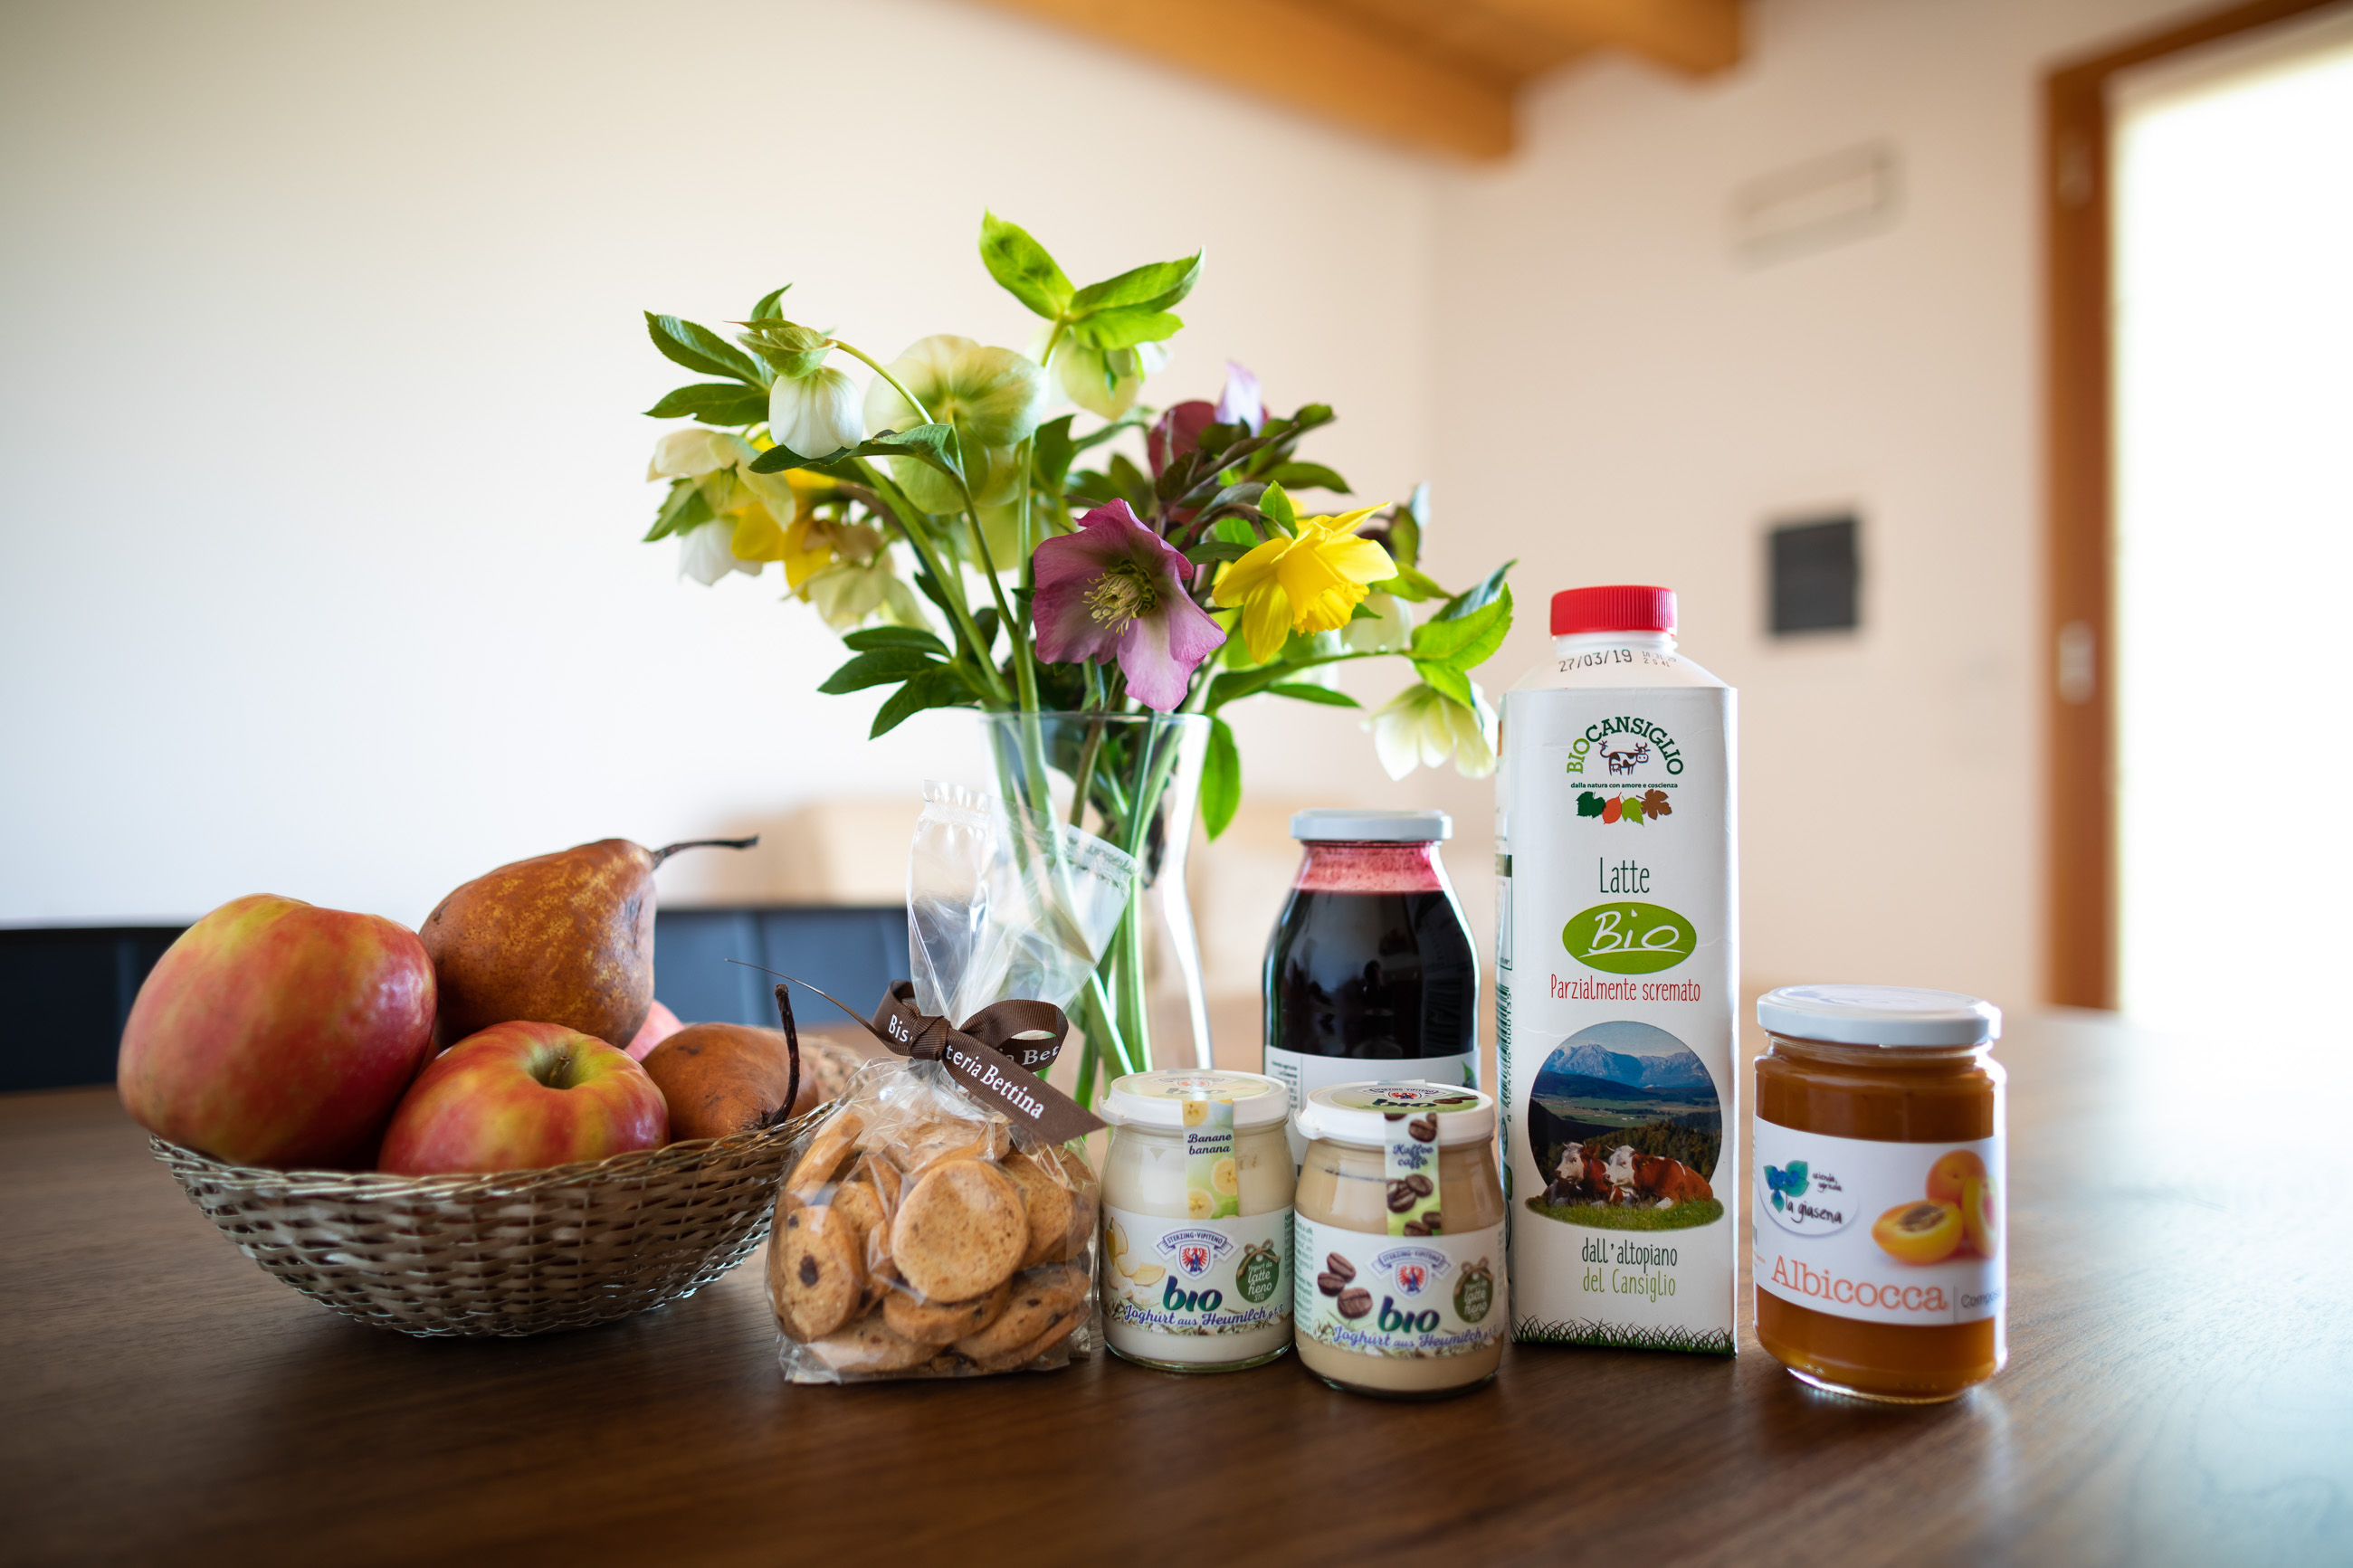 Local products at the eco-friendly house Casa Fiorindo: Artisanl Biscuit, compote, organic milk, fruits